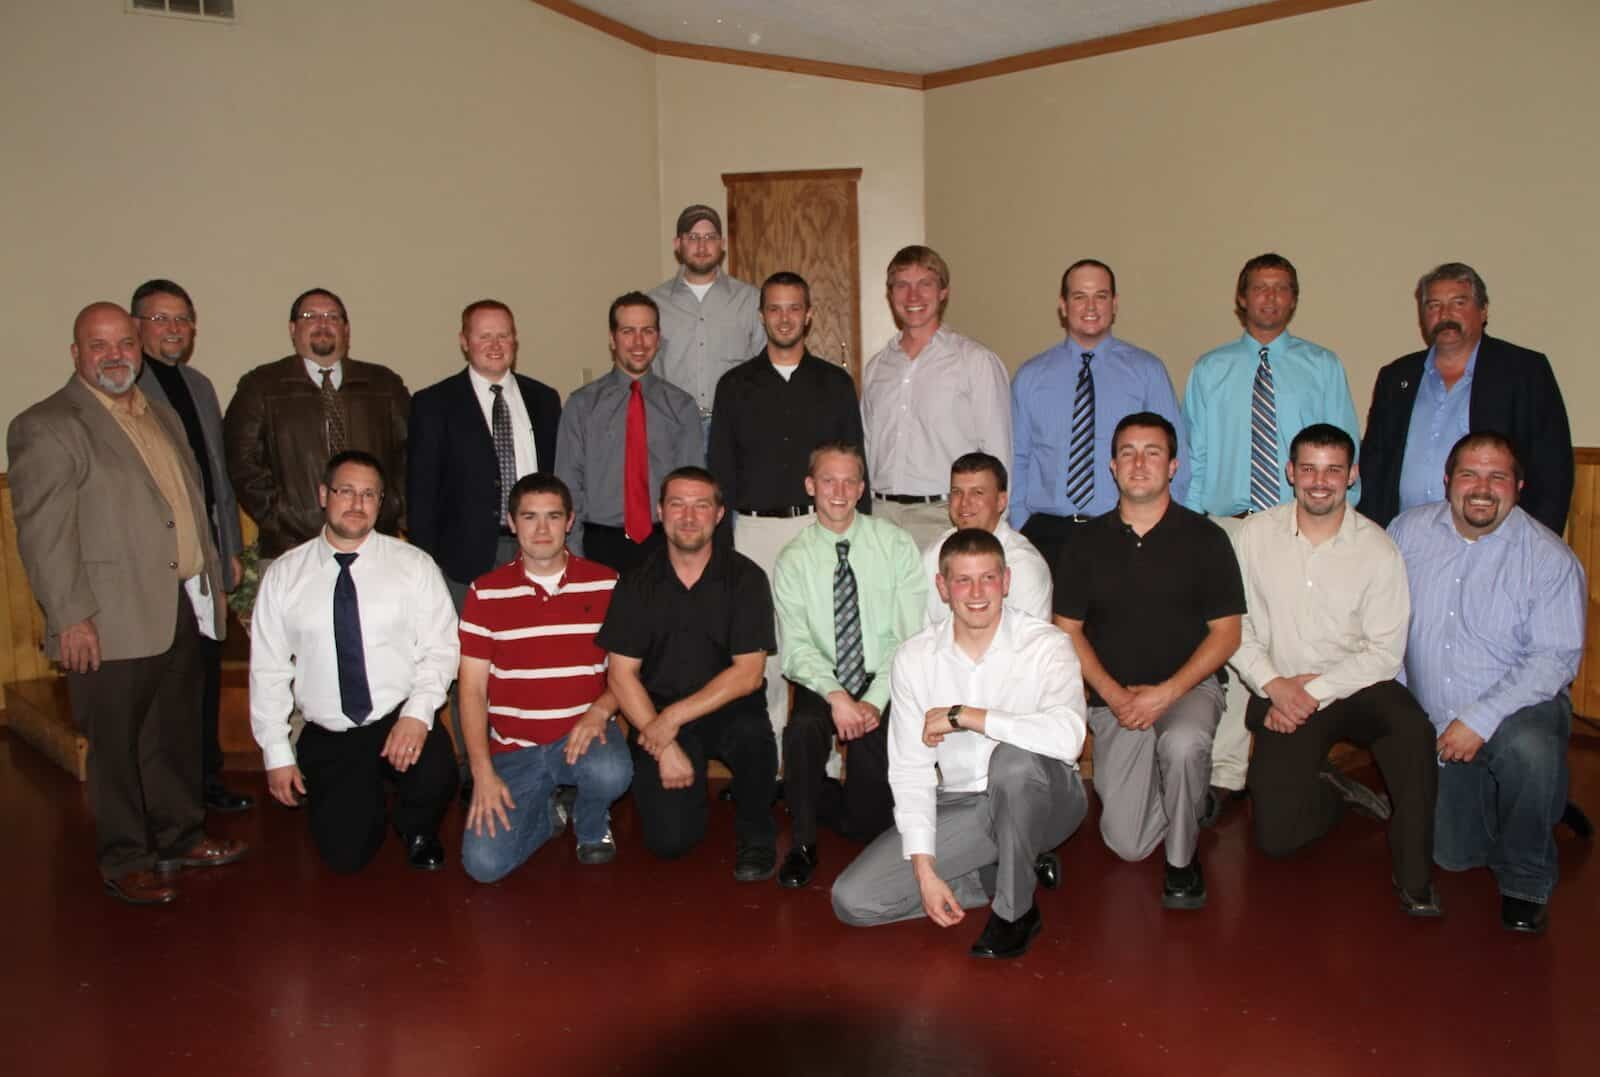 2011 5th year electrical apprentice graduates